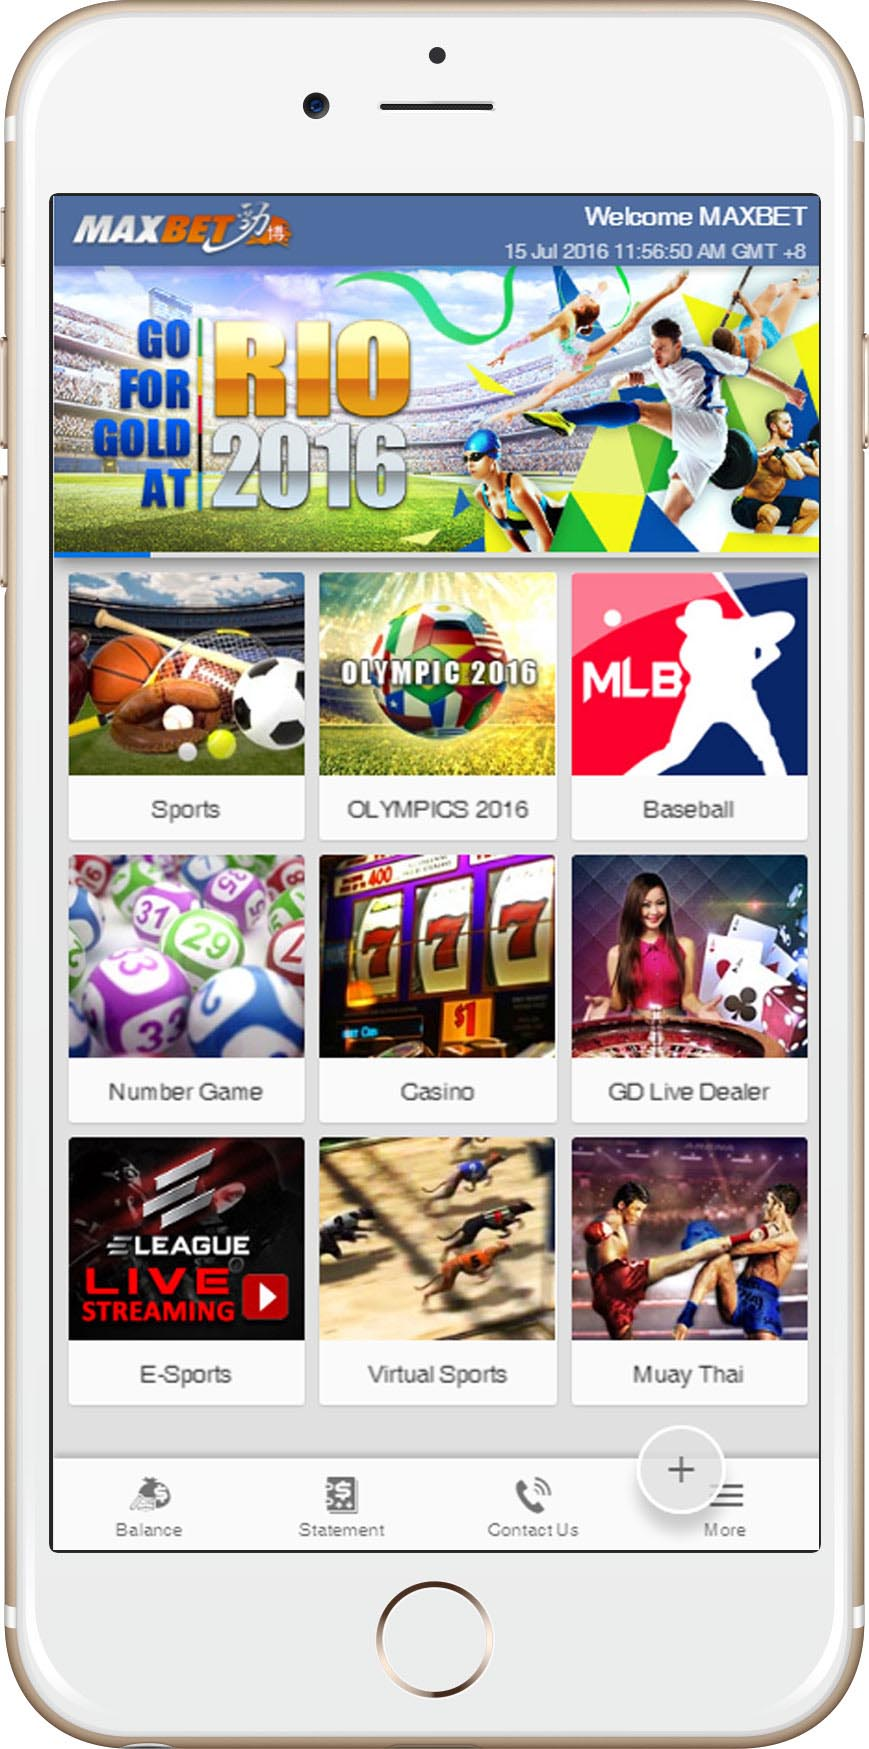 MAXBET Sportsbook Online - betting via smartphone ios android html5 - asiabetking